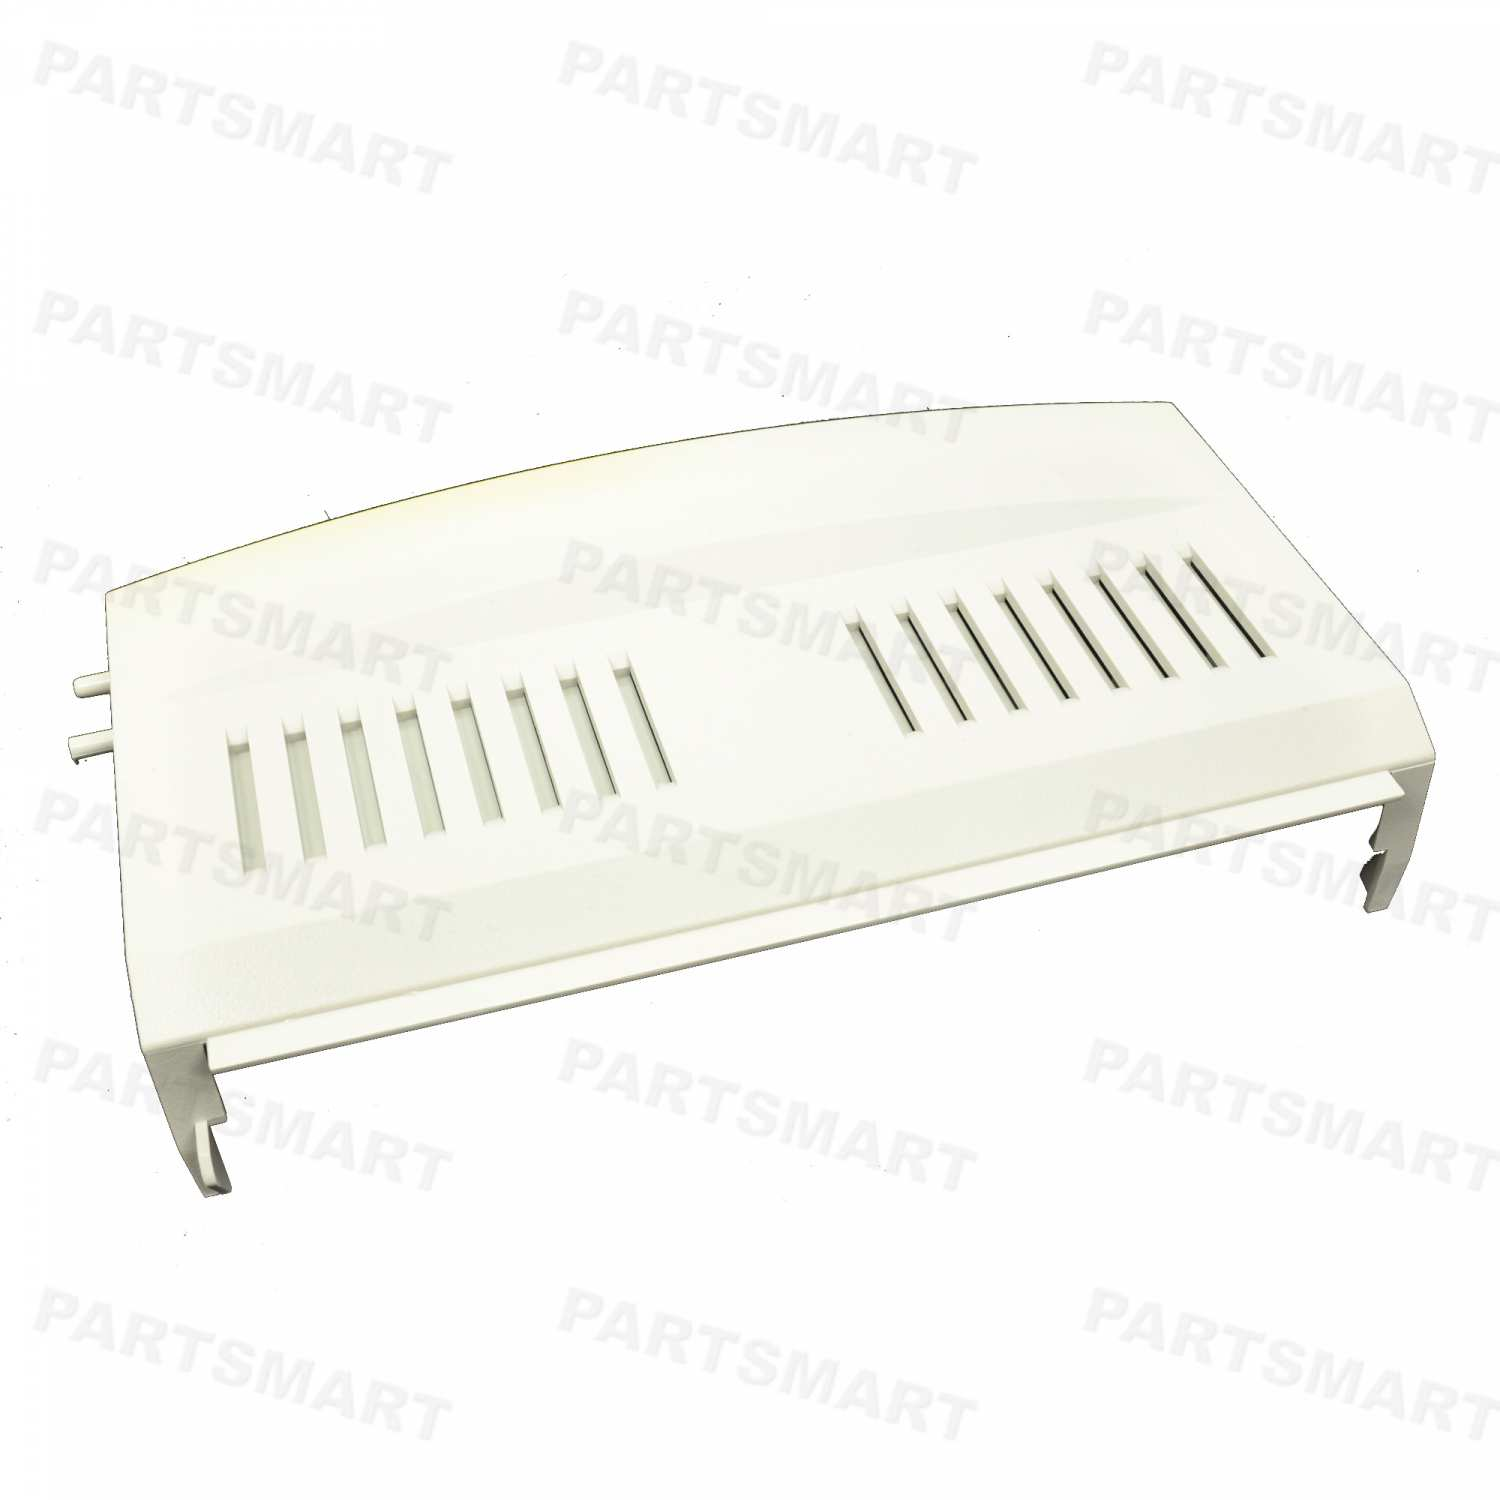 RB1-9044-000 Duplexer Cover, Top for HP LaserJet 4000